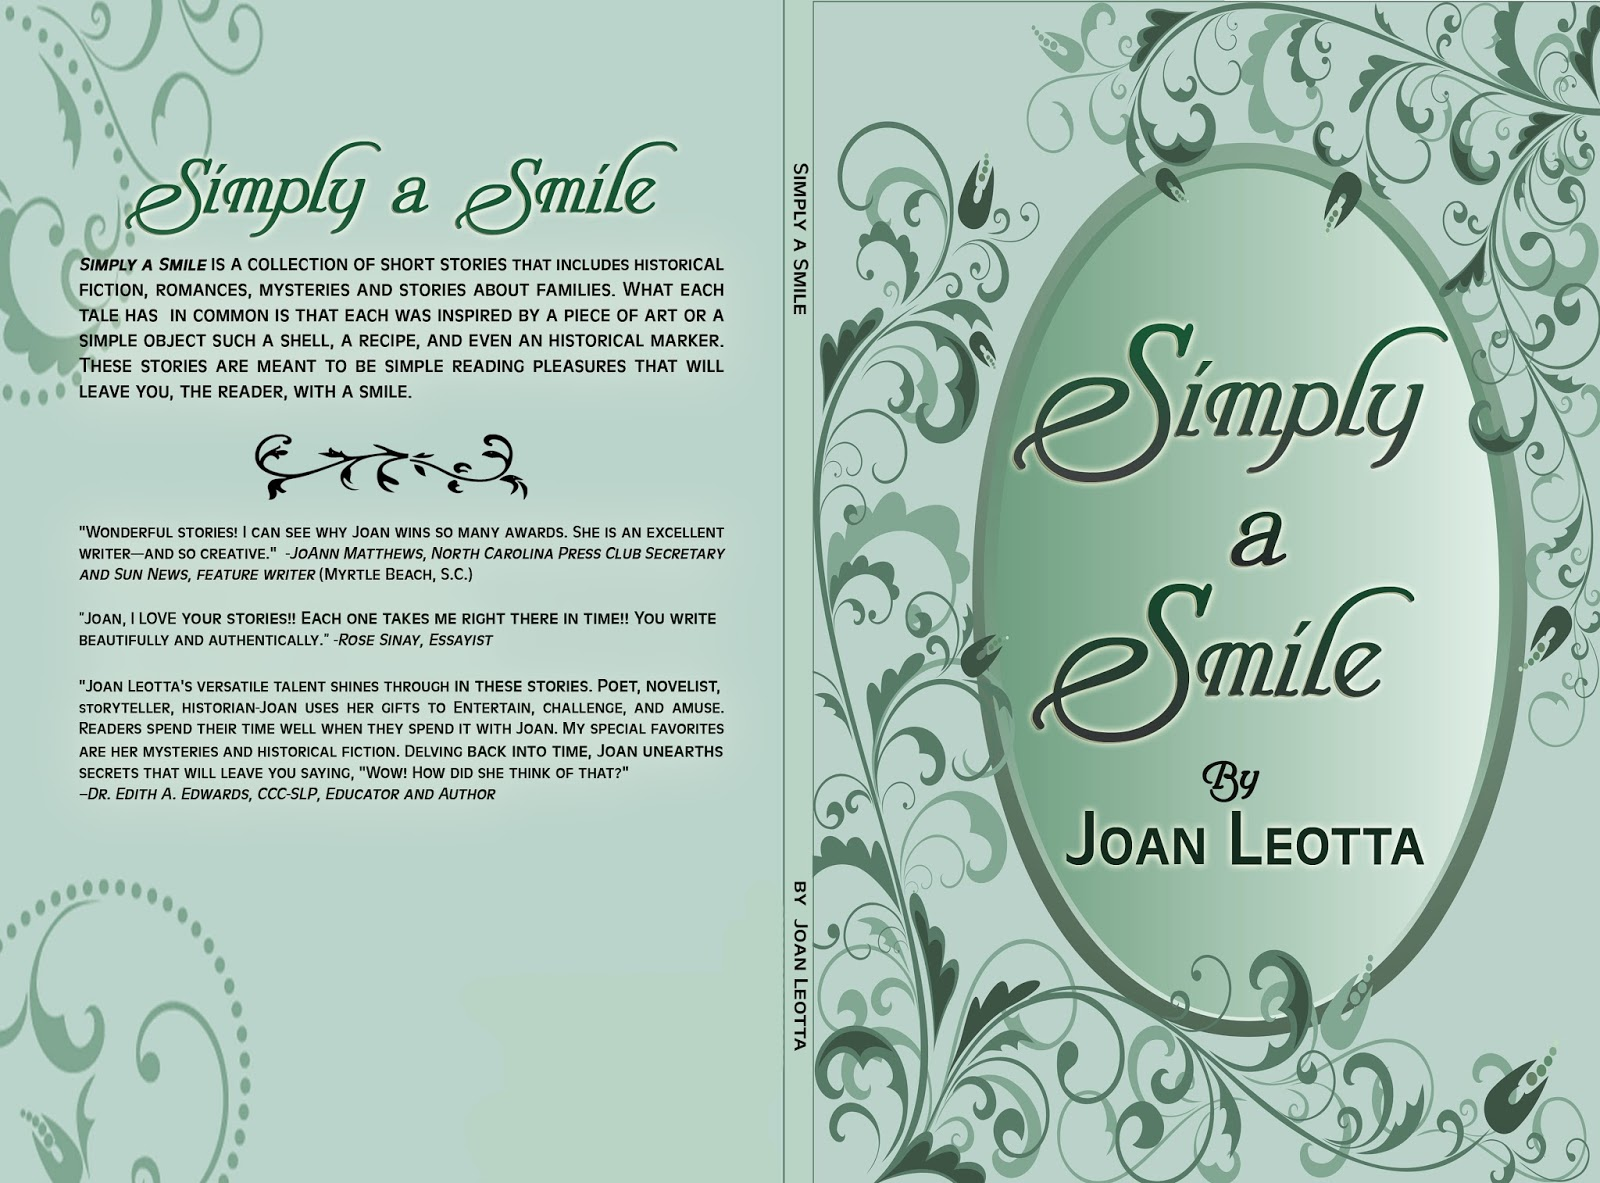 lyrical pens 2016 simply a smile includes a collection of short stories which contain historical fiction r ce mystery and tales of family each was inspired by a piece